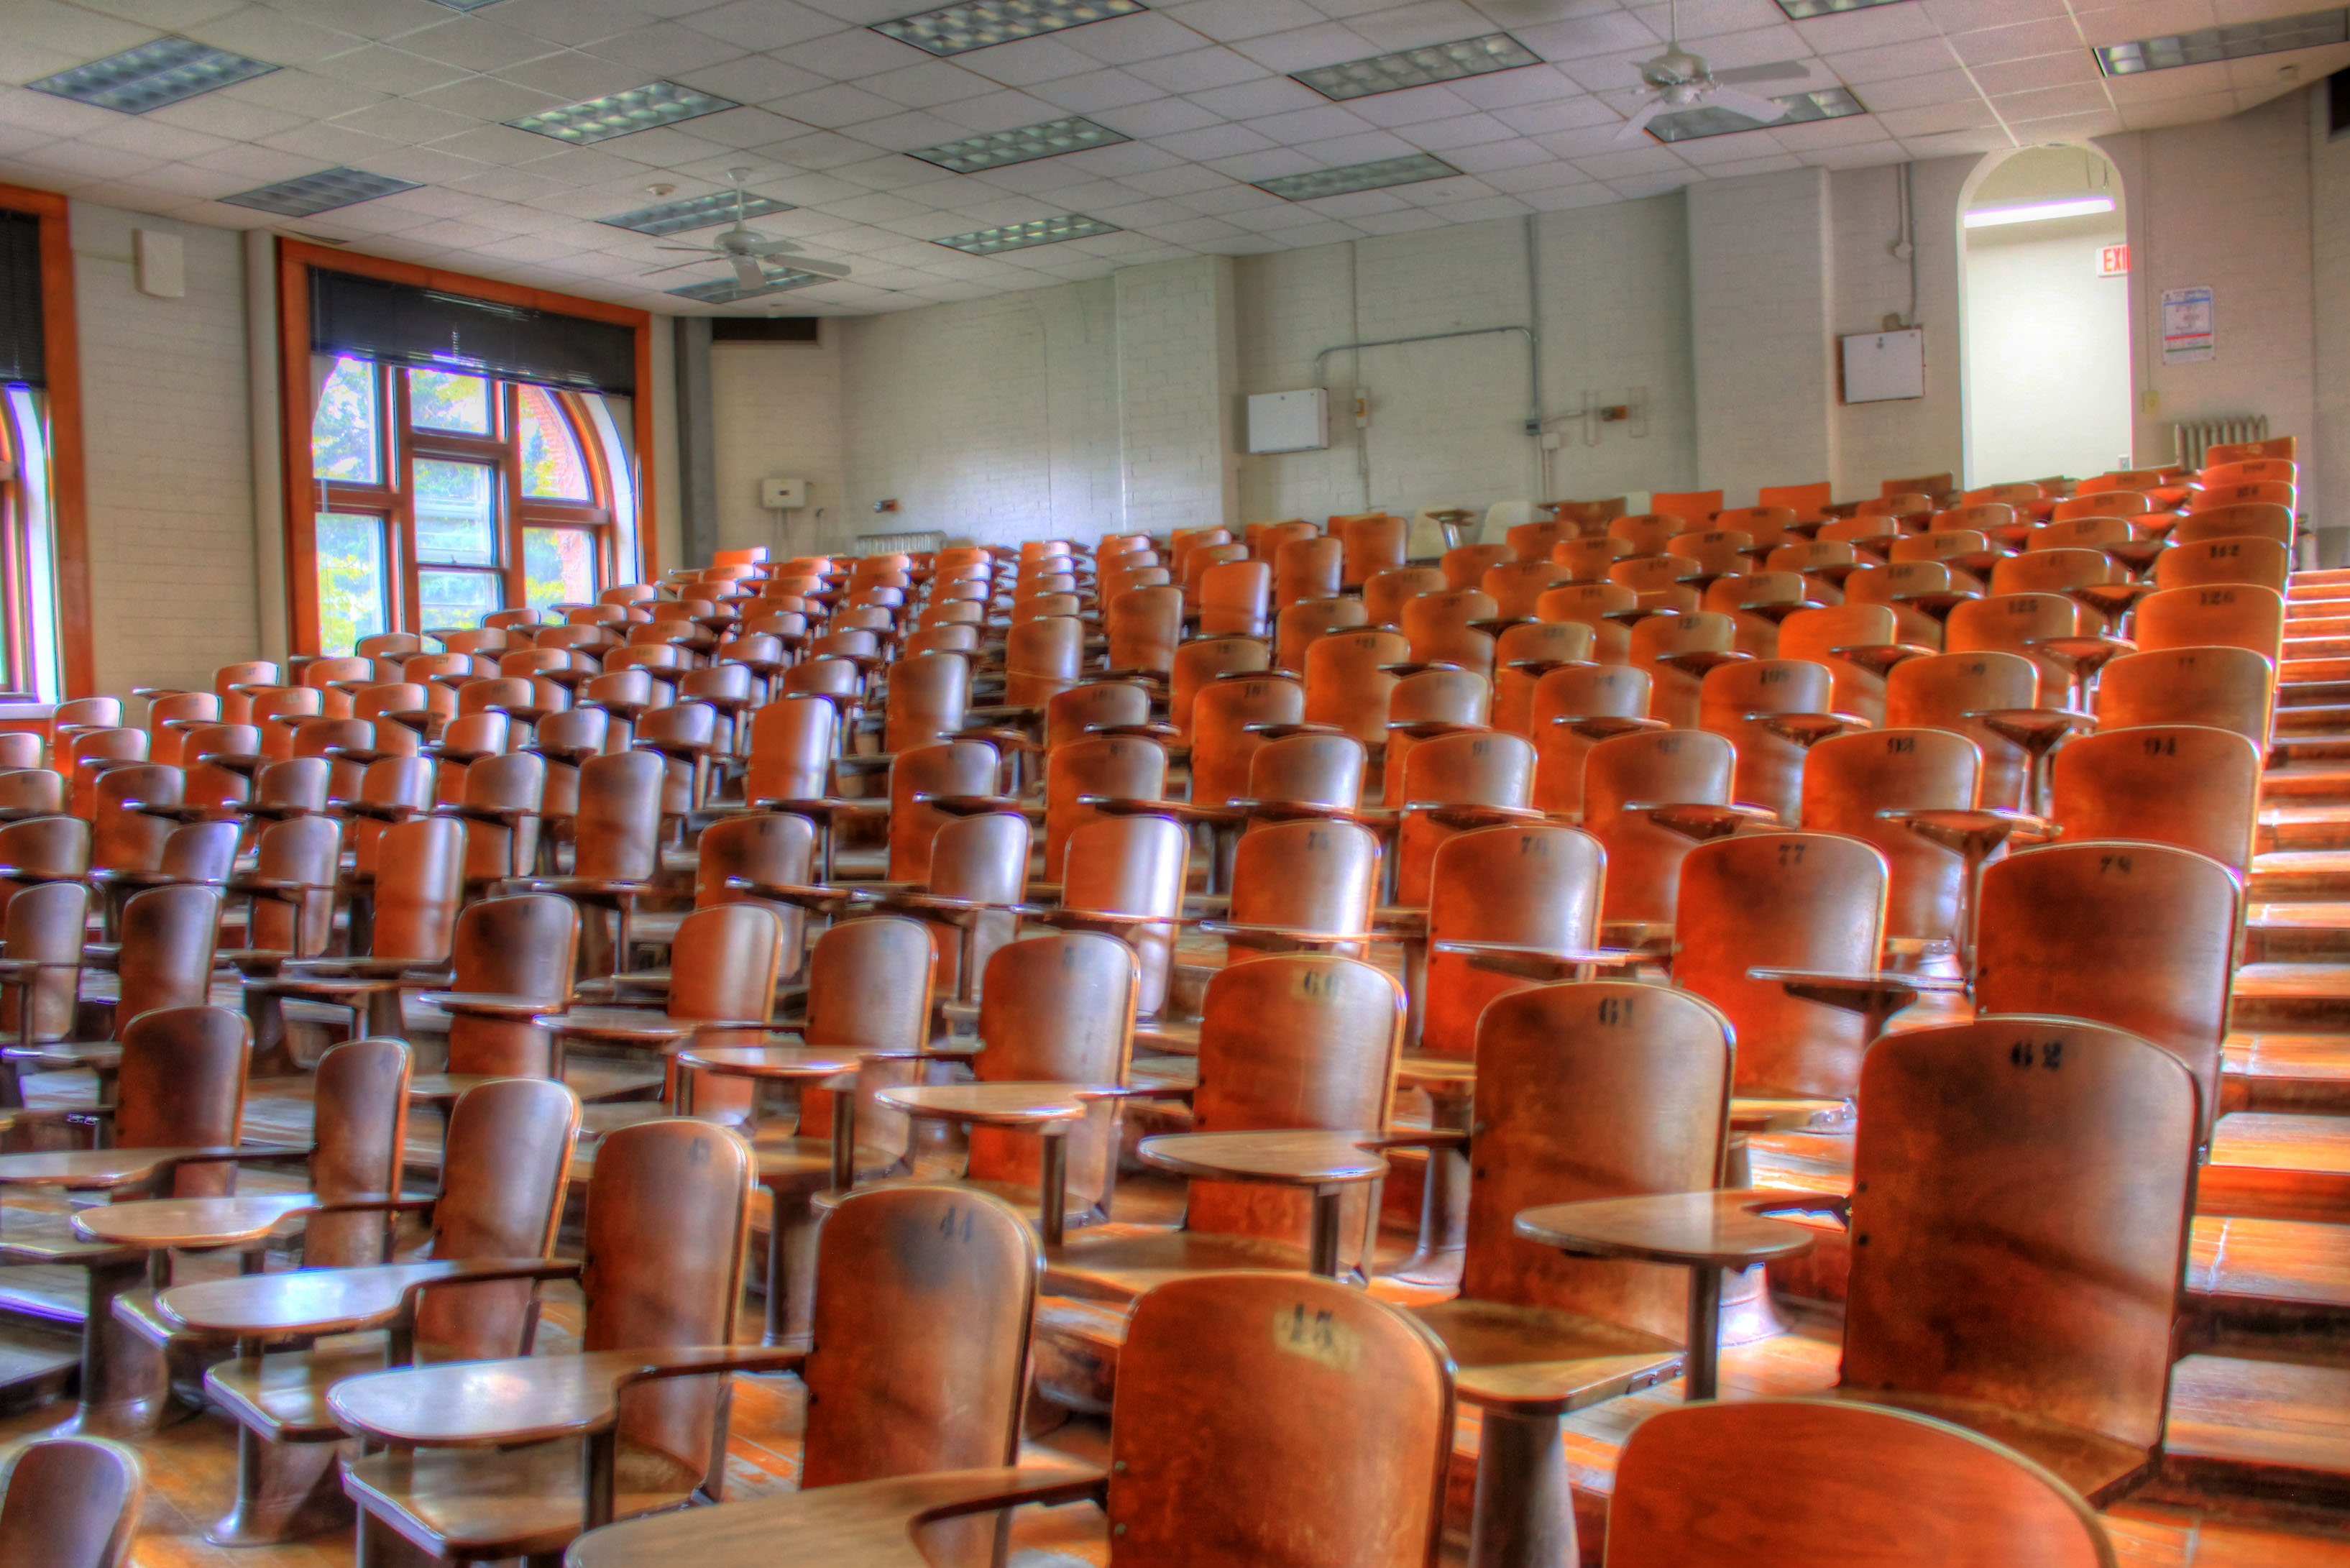 Lecture hall image - Free stock photo - Public Domain ...